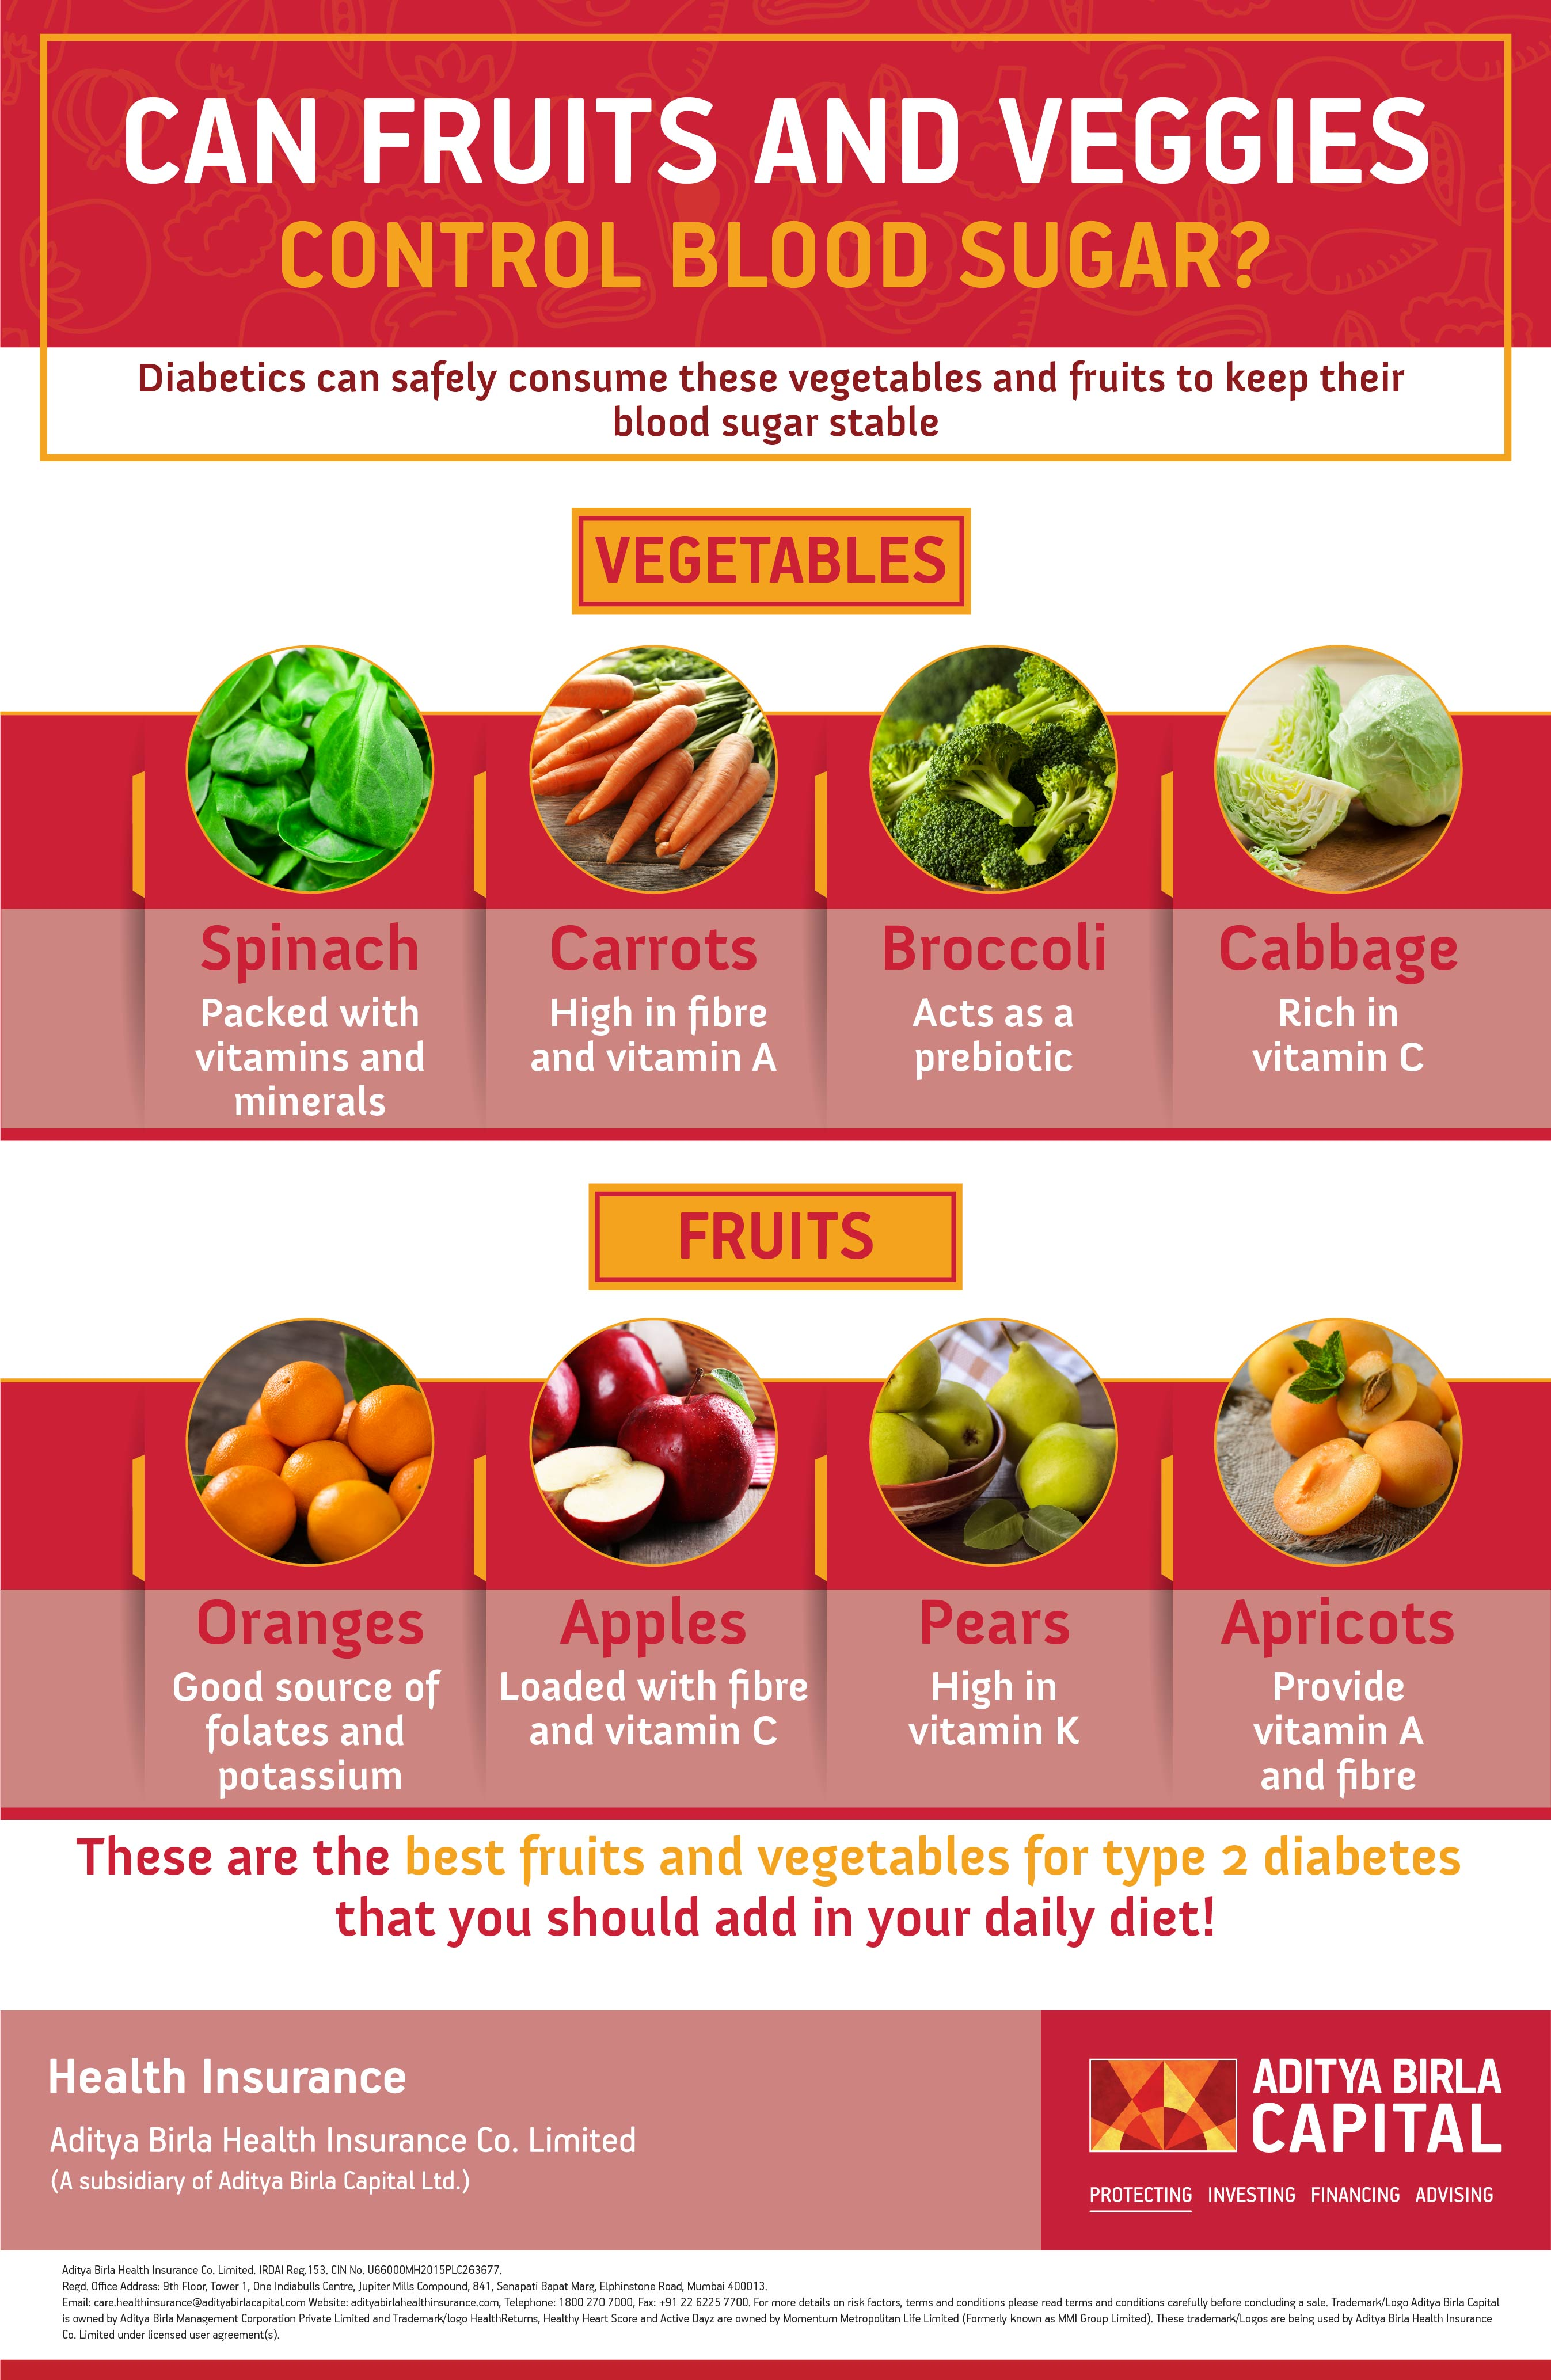 can fruits and veggies control blood sugar- Activ living